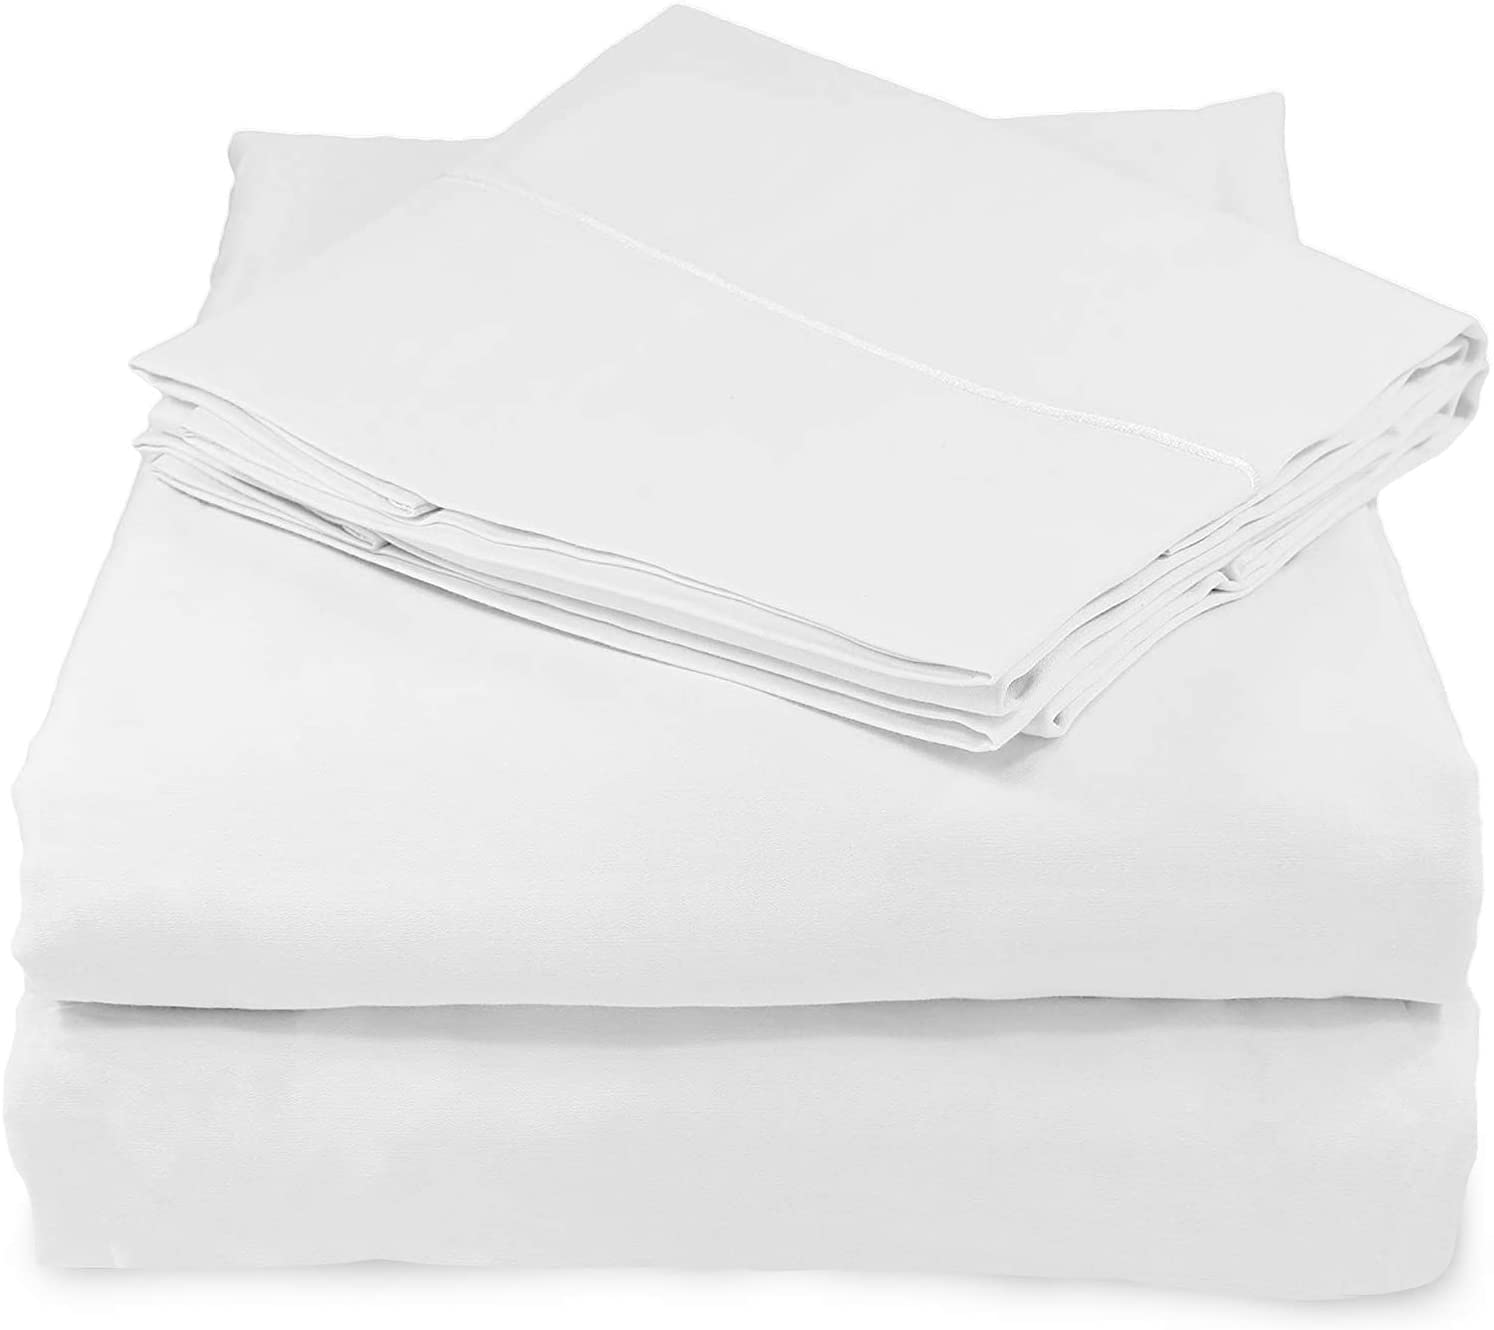 Whisper Organics, 100% Organic Cotton Sheets - 300 Thread Count Bed Sheets Set - Premium Quality Hypoallergenic Sheets - Deep Pocket Twin Sheet Set - GOTS Certified, White (Twin XL Size)